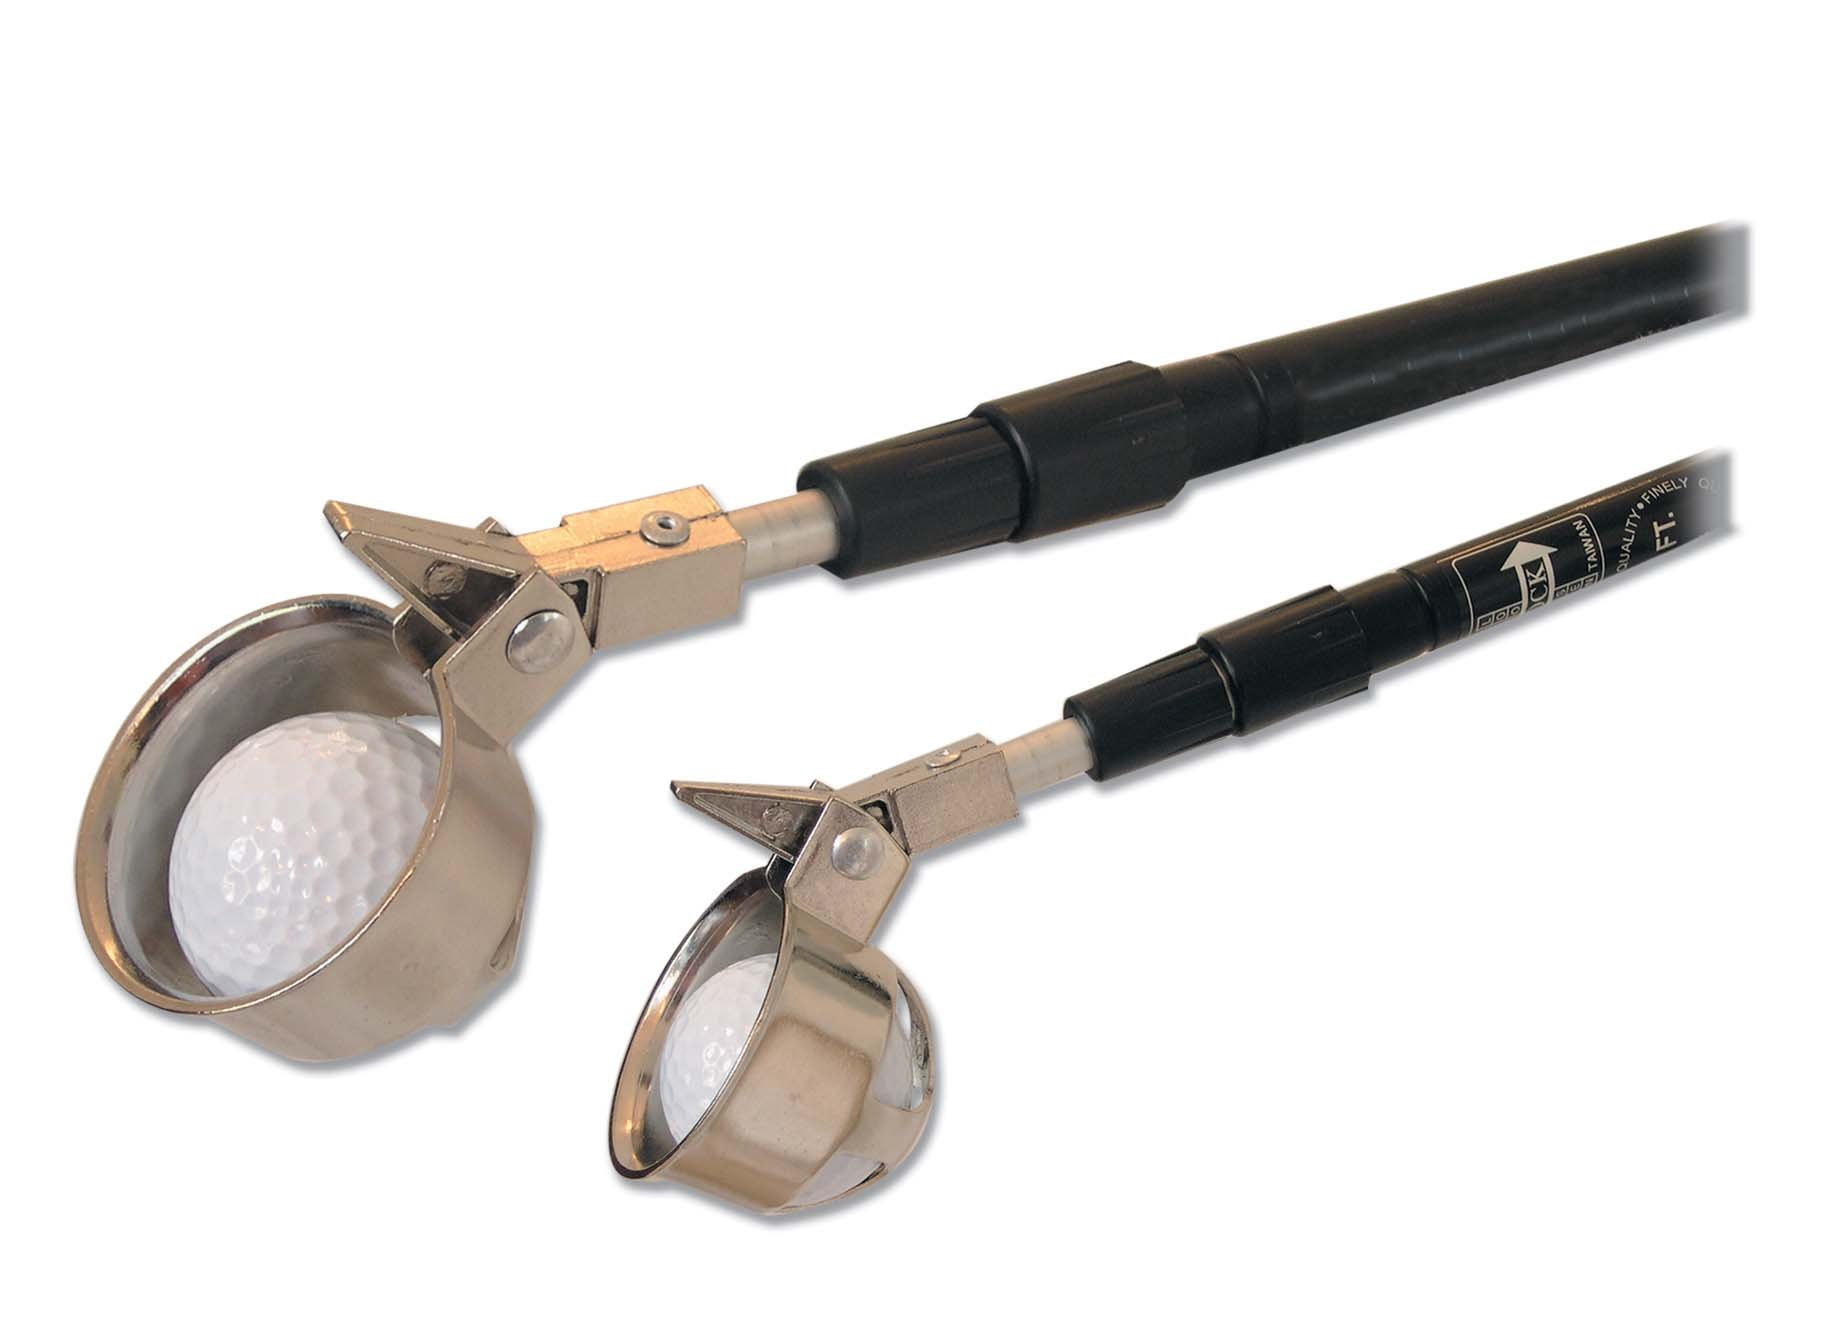 JP Lann Golf Ball Retrievers (Metal Hinge Cup, 9 Foot) by JP Lann